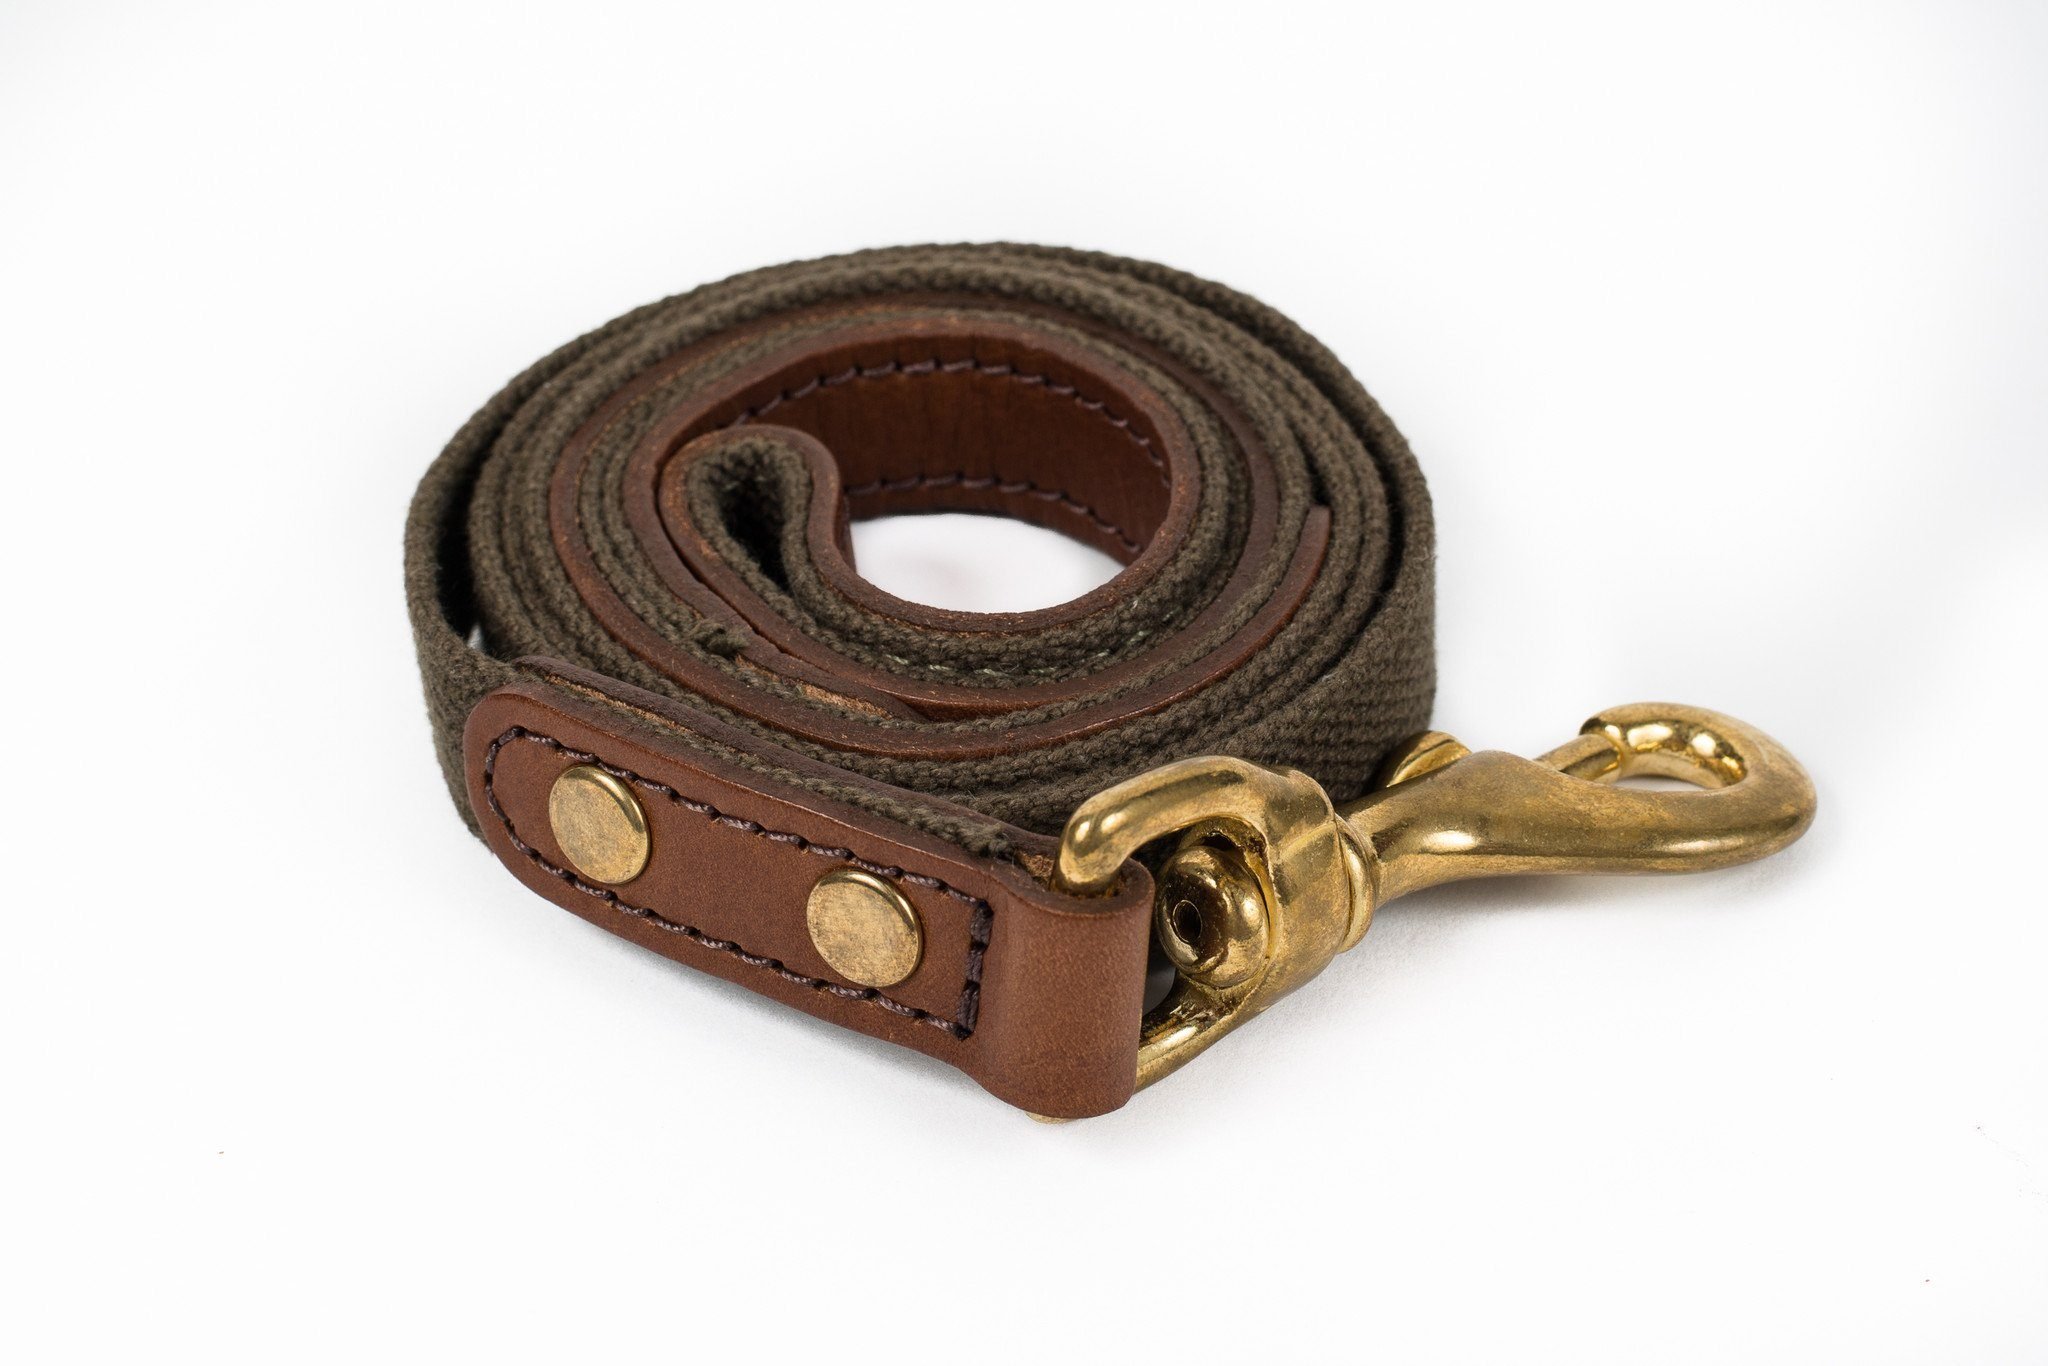 Dog Lead - Leather and deep olive webbing